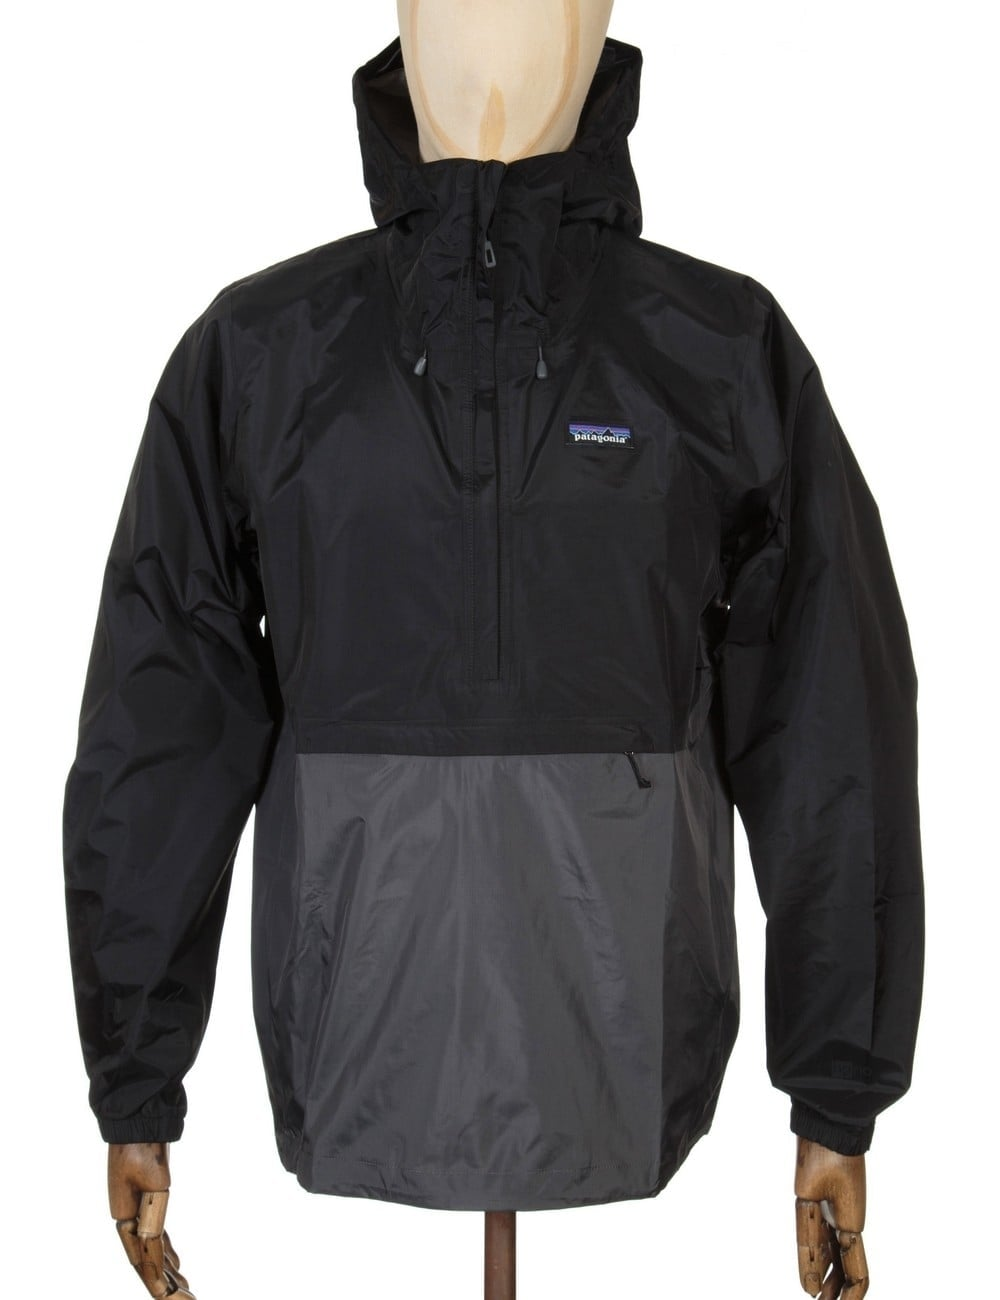 Patagonia Torrentshell Pullover Jacket - Black - Clothing from Fat ...